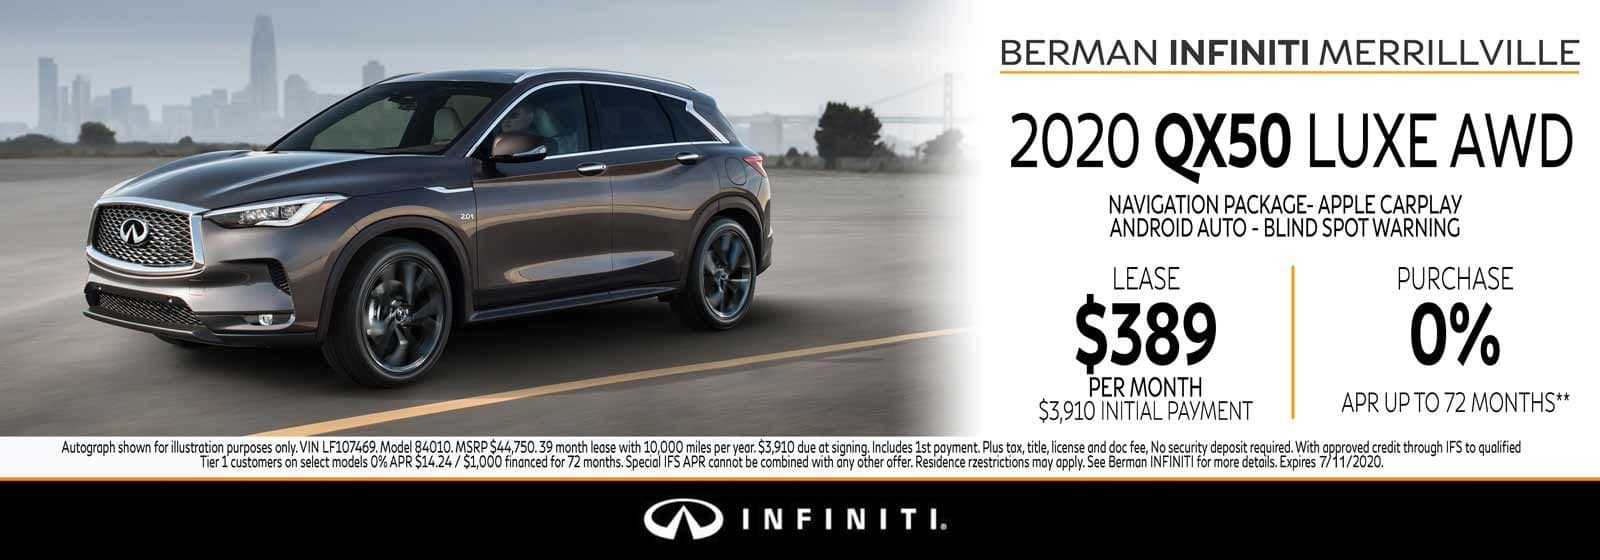 New 2020 INFINITI QX50 July Offer at Berman INFINITI of Merrillville!